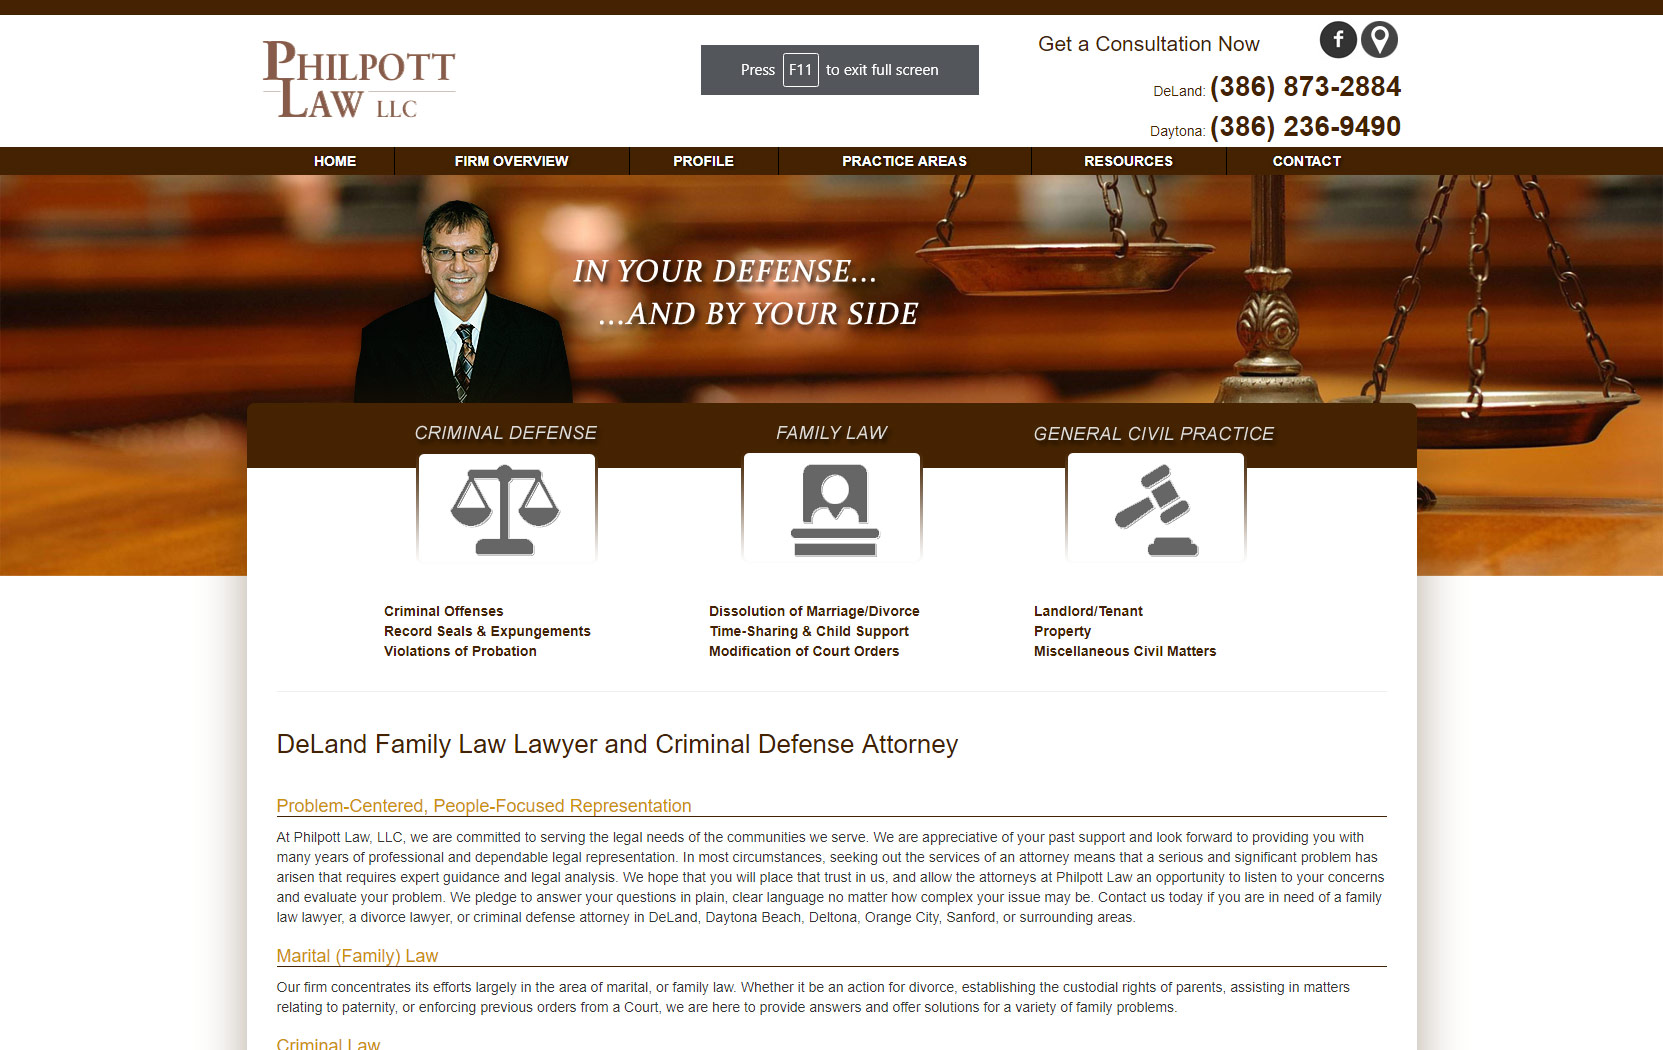 Philpott Law